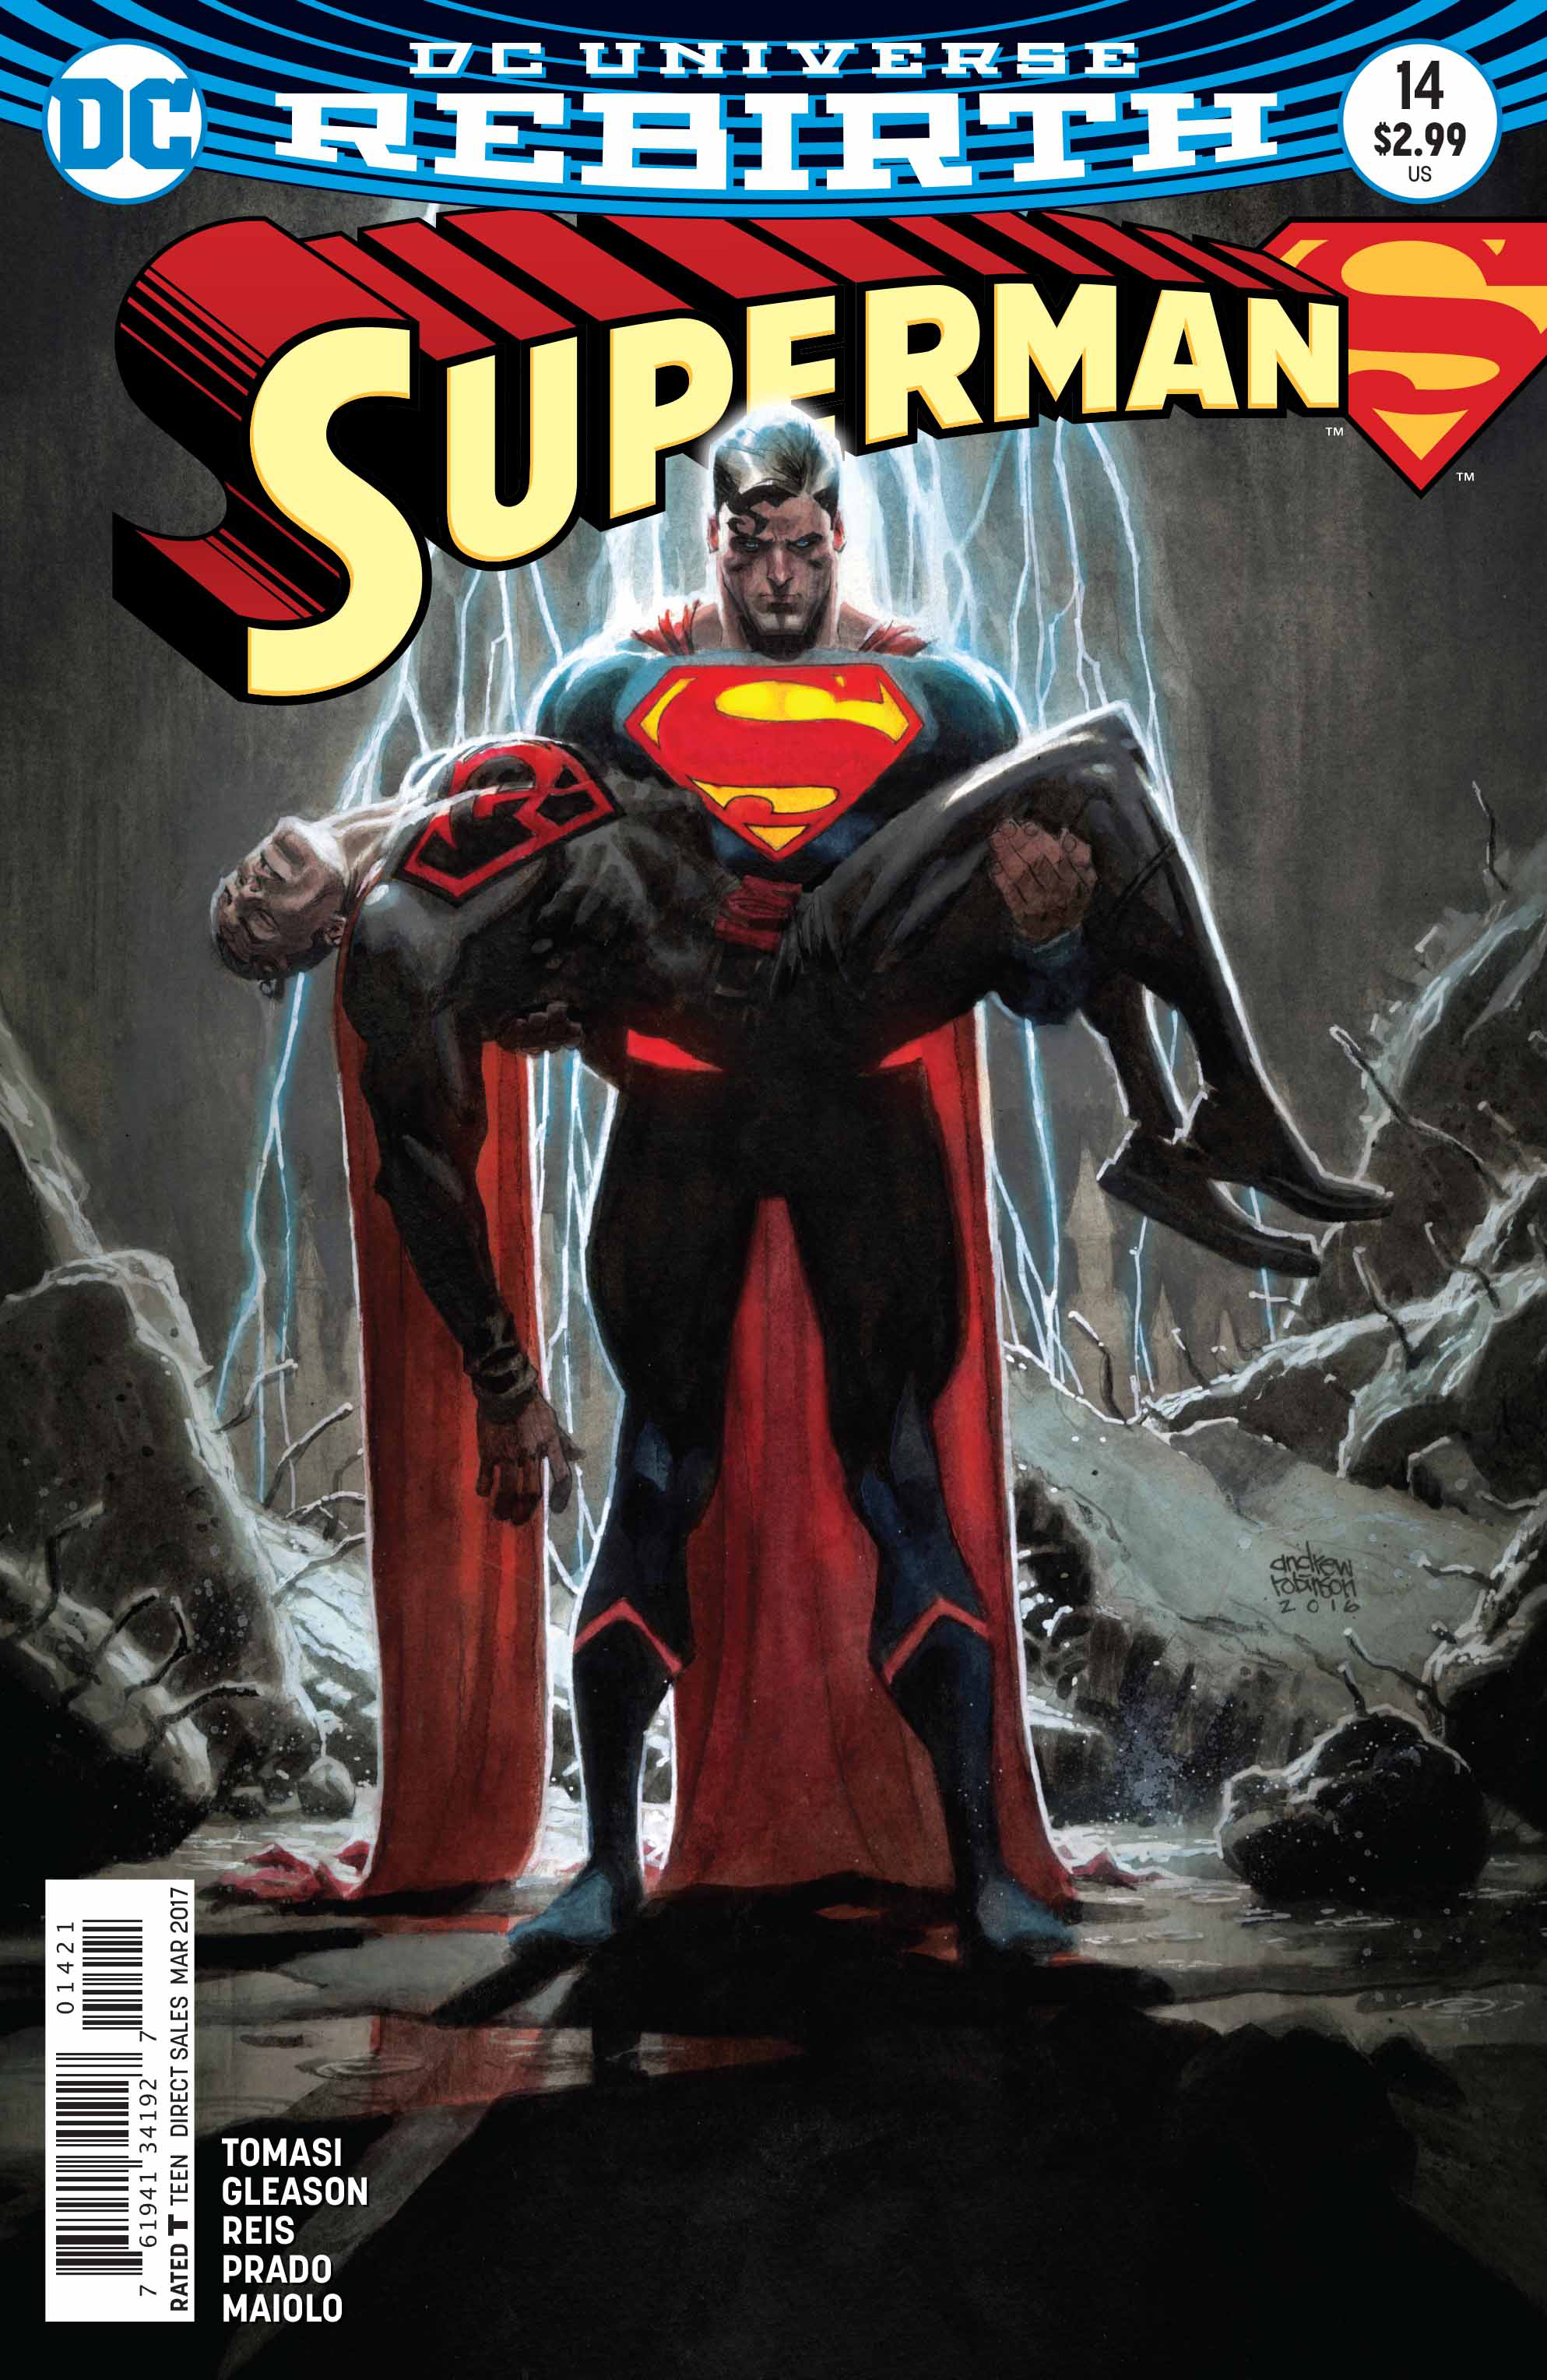 Nov160257 Superman 14 Var Ed Previews World